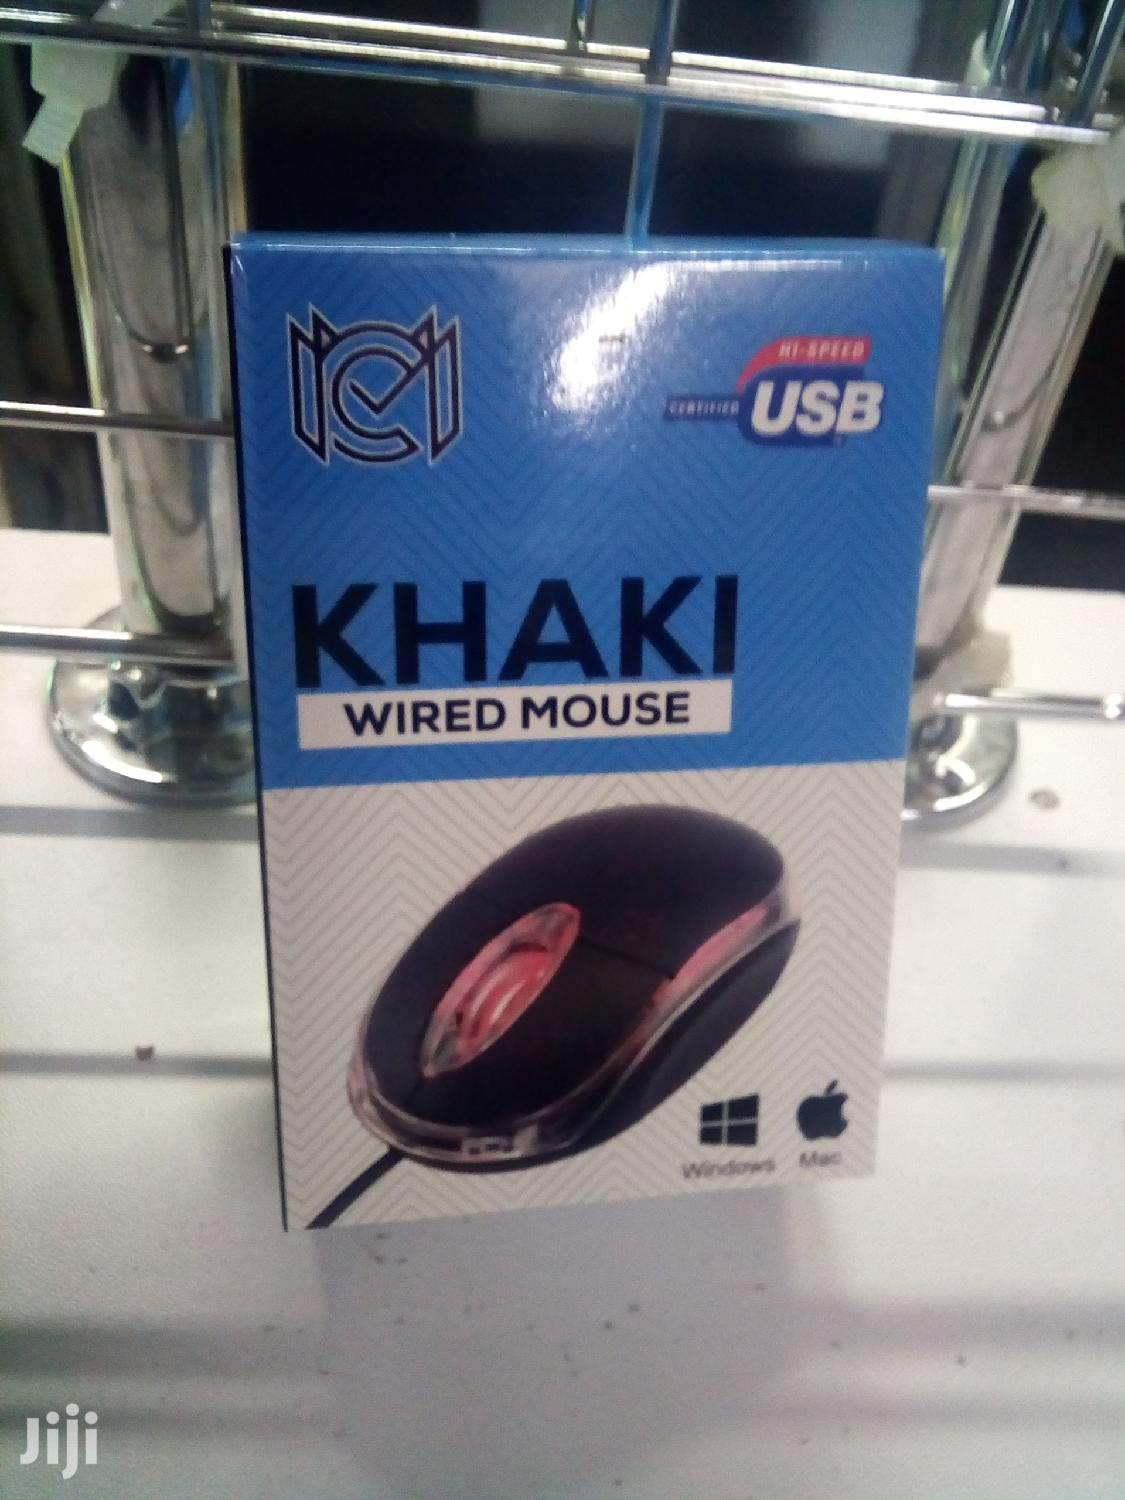 Khaki Wired Mouse Available